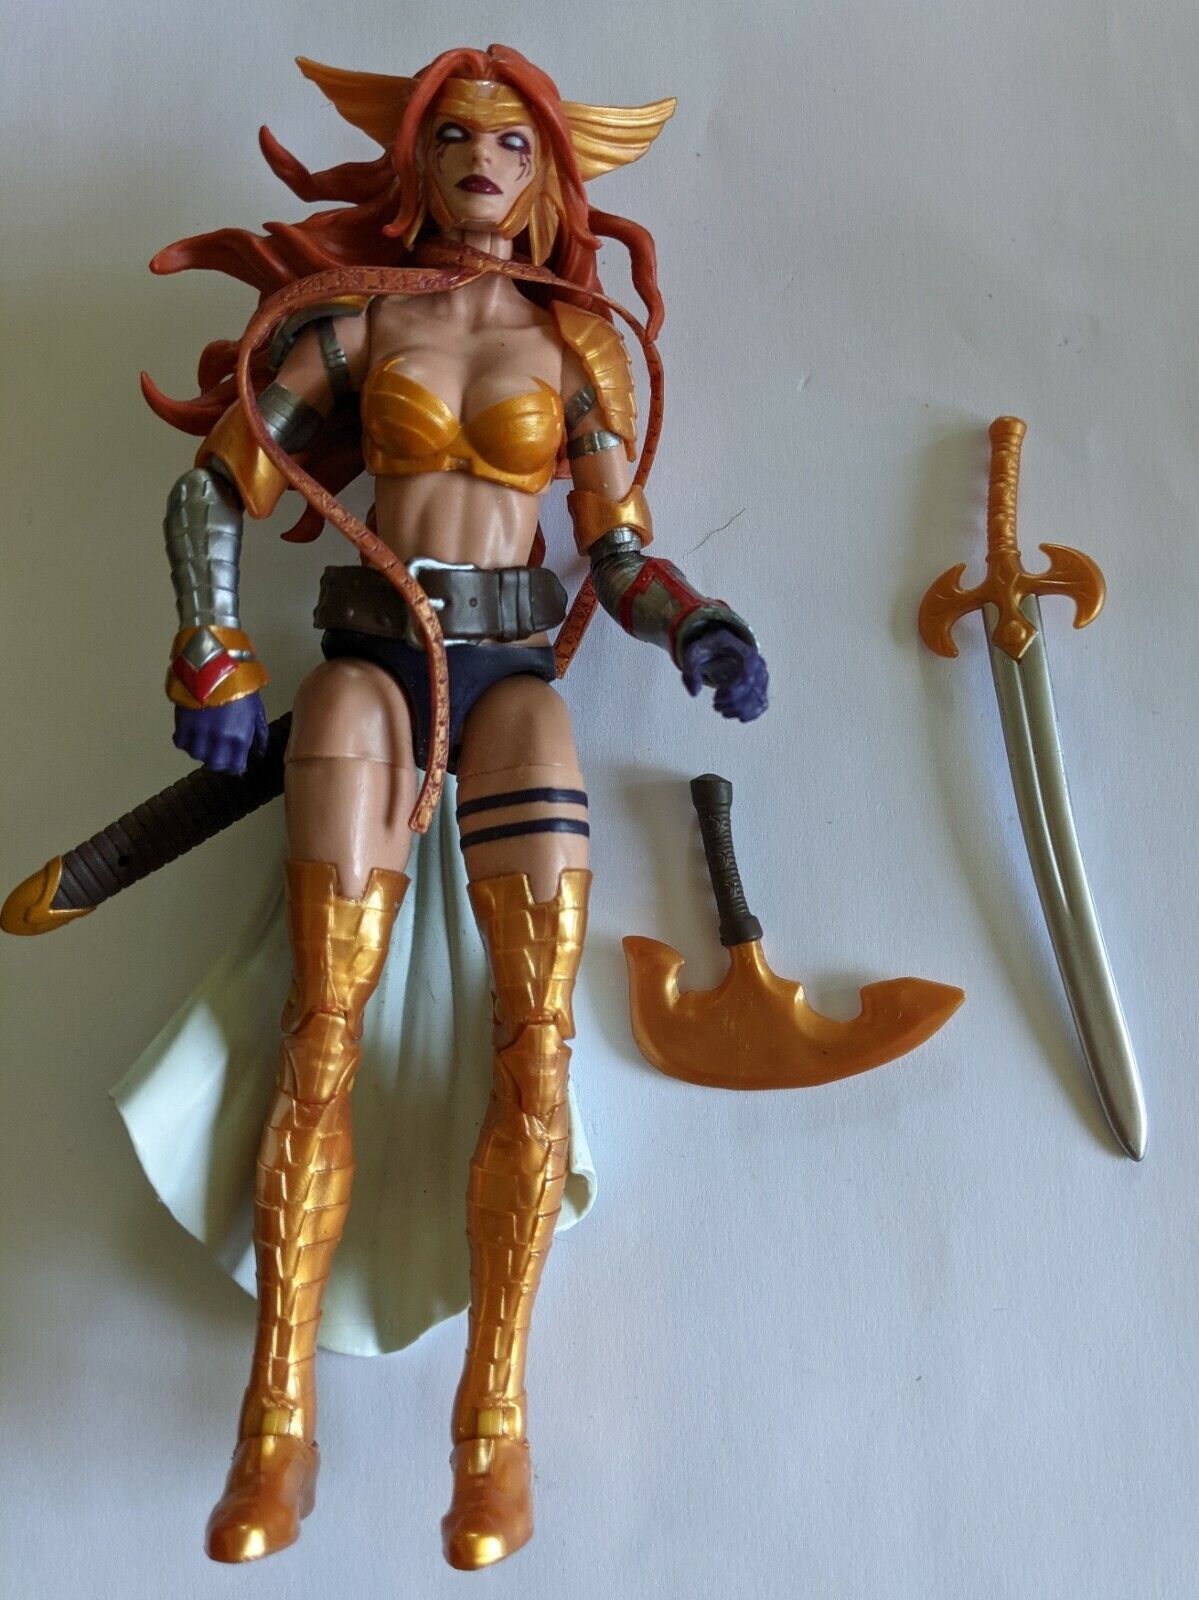 Marvel Legends ANGELA Guardians Of The Galaxy Hasbro Spawn 6in. Action Figure on eBay thumbnail